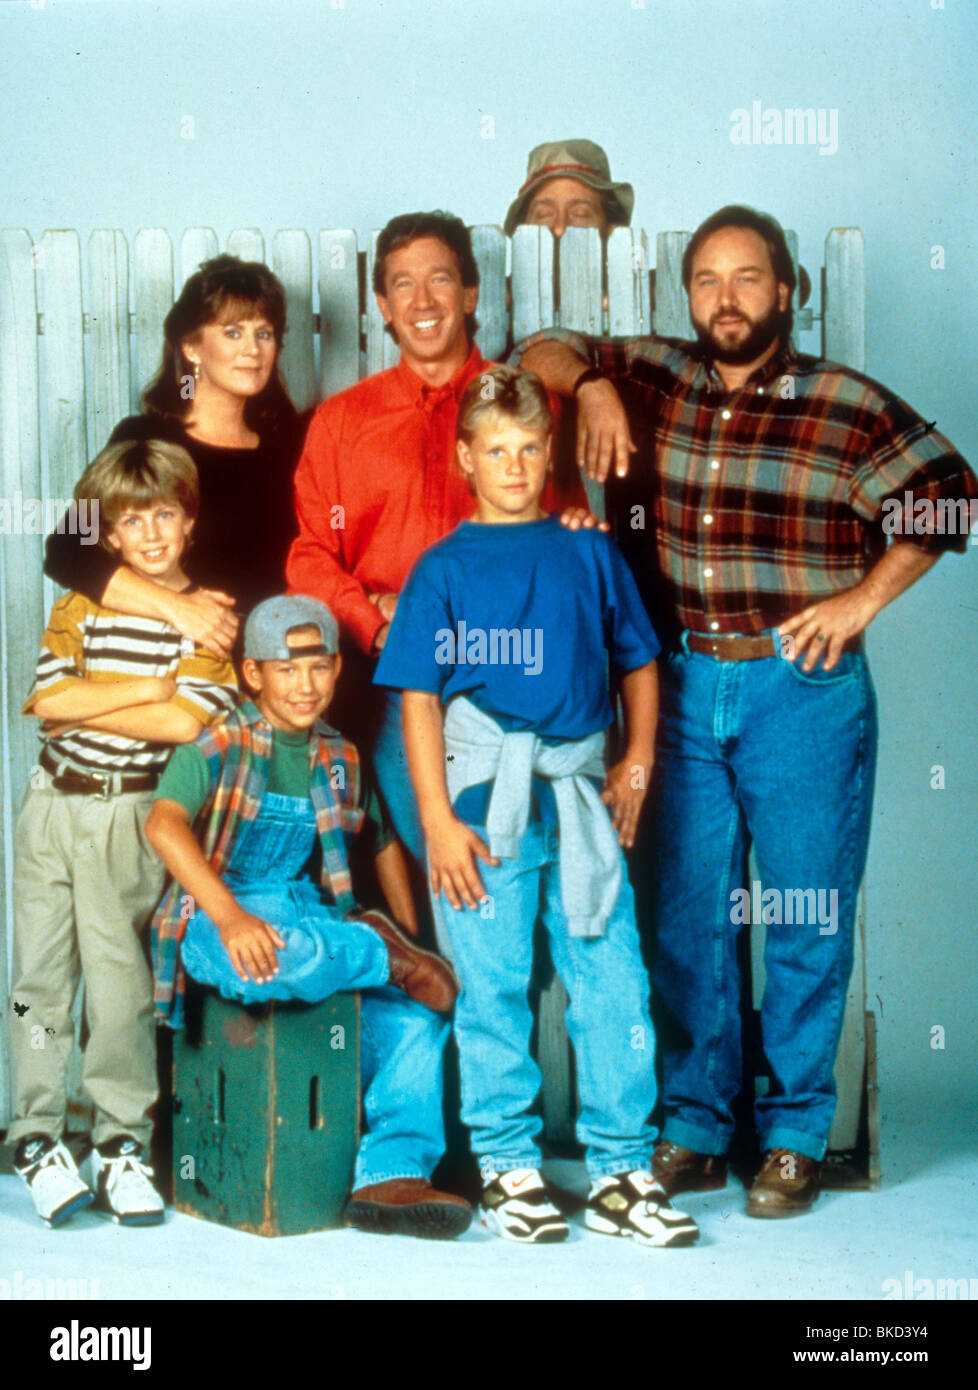 home-improvement-tv-patricia-richardson-tim-allen-earl-hindman-richard-BKD3Y4.jpg